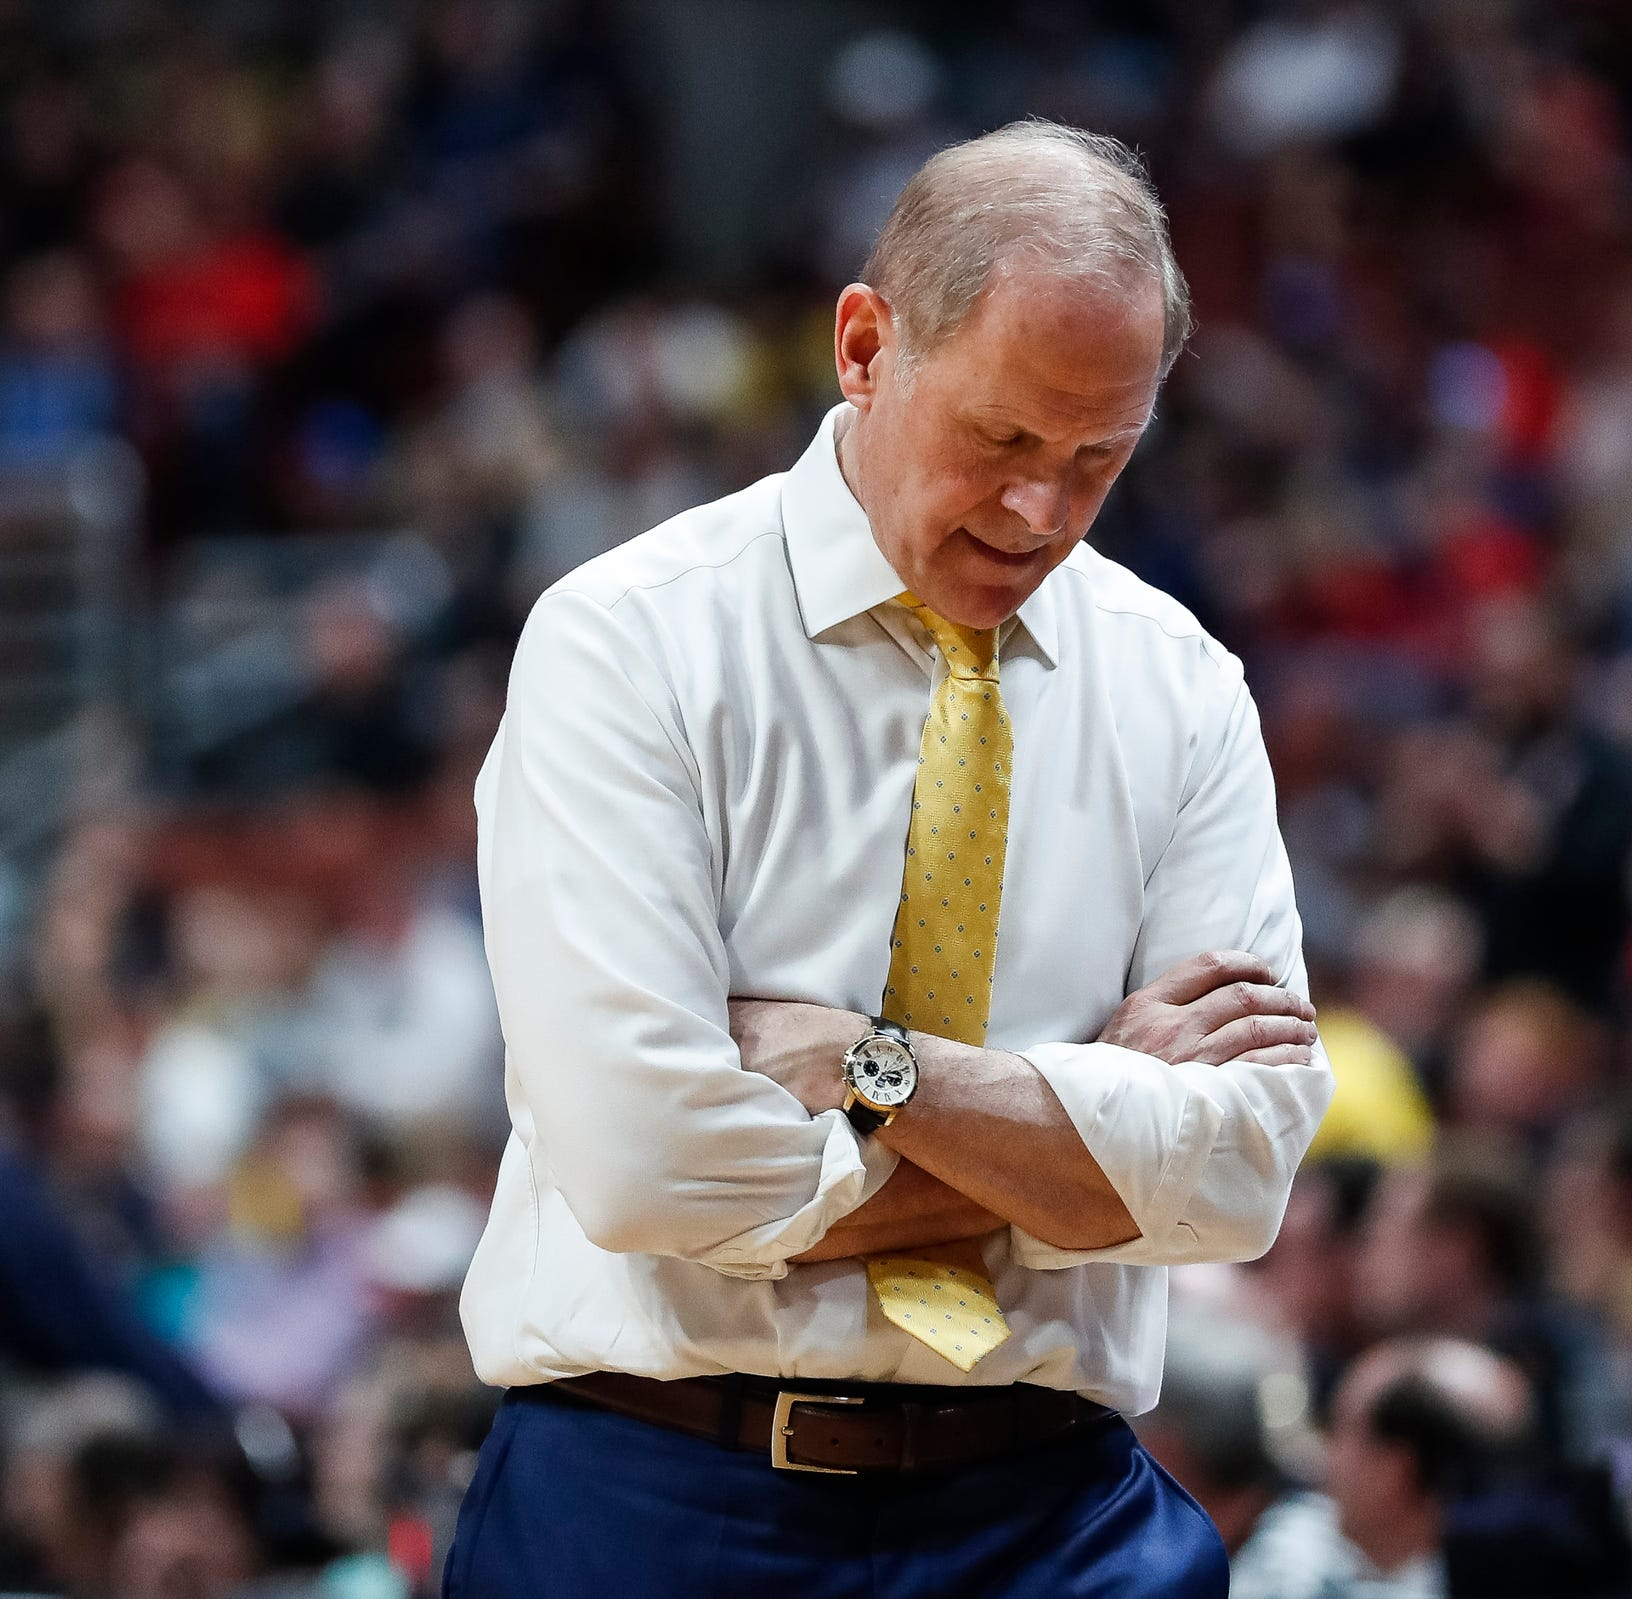 John Beilein must adapt after MSU losses, getting crushed by Texas Tech